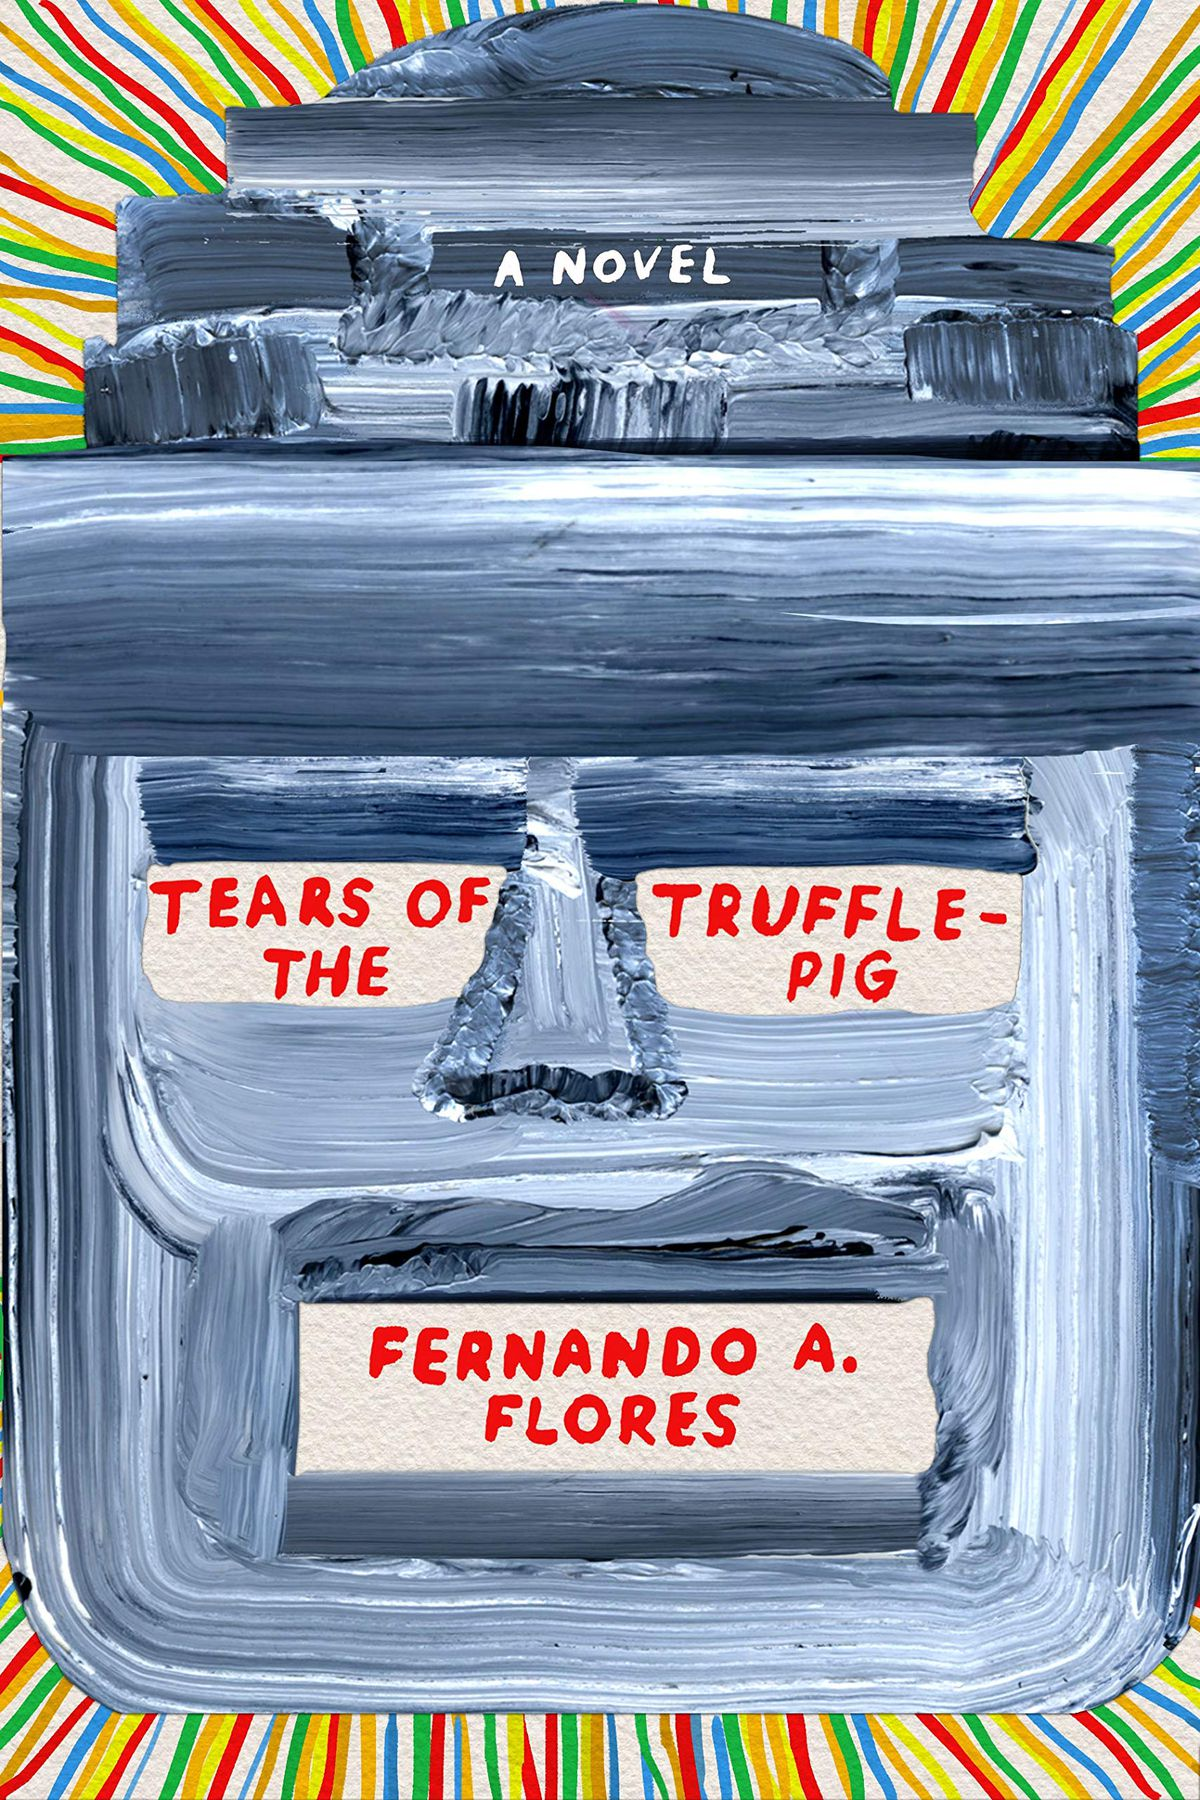 The cover of Tears of the Trufflepig by Fernando A. Flores